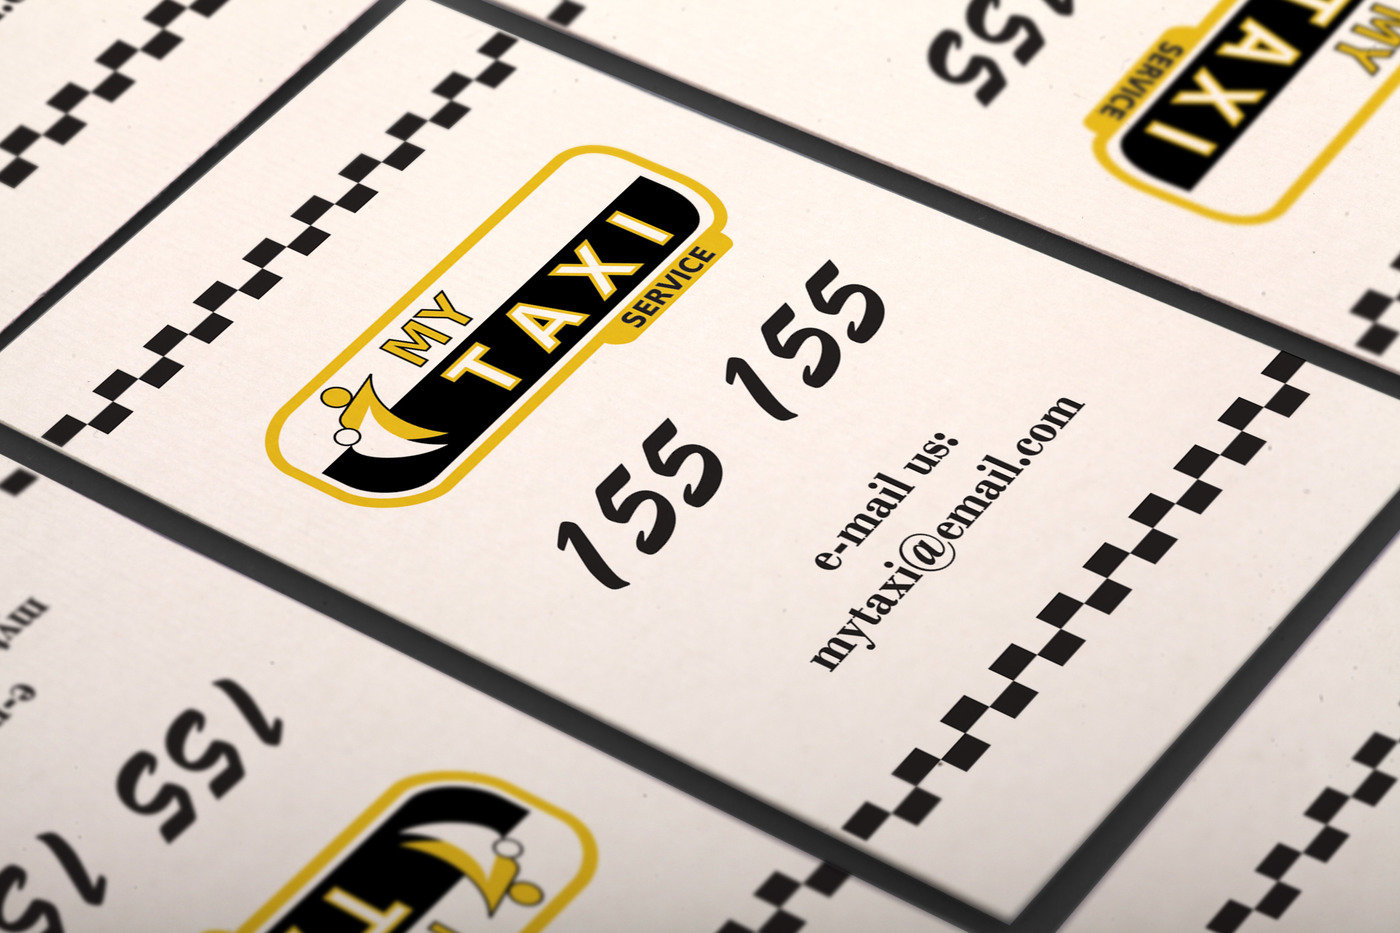 Free Vertical Taxi Business Card Template by Borce Markoski at ...